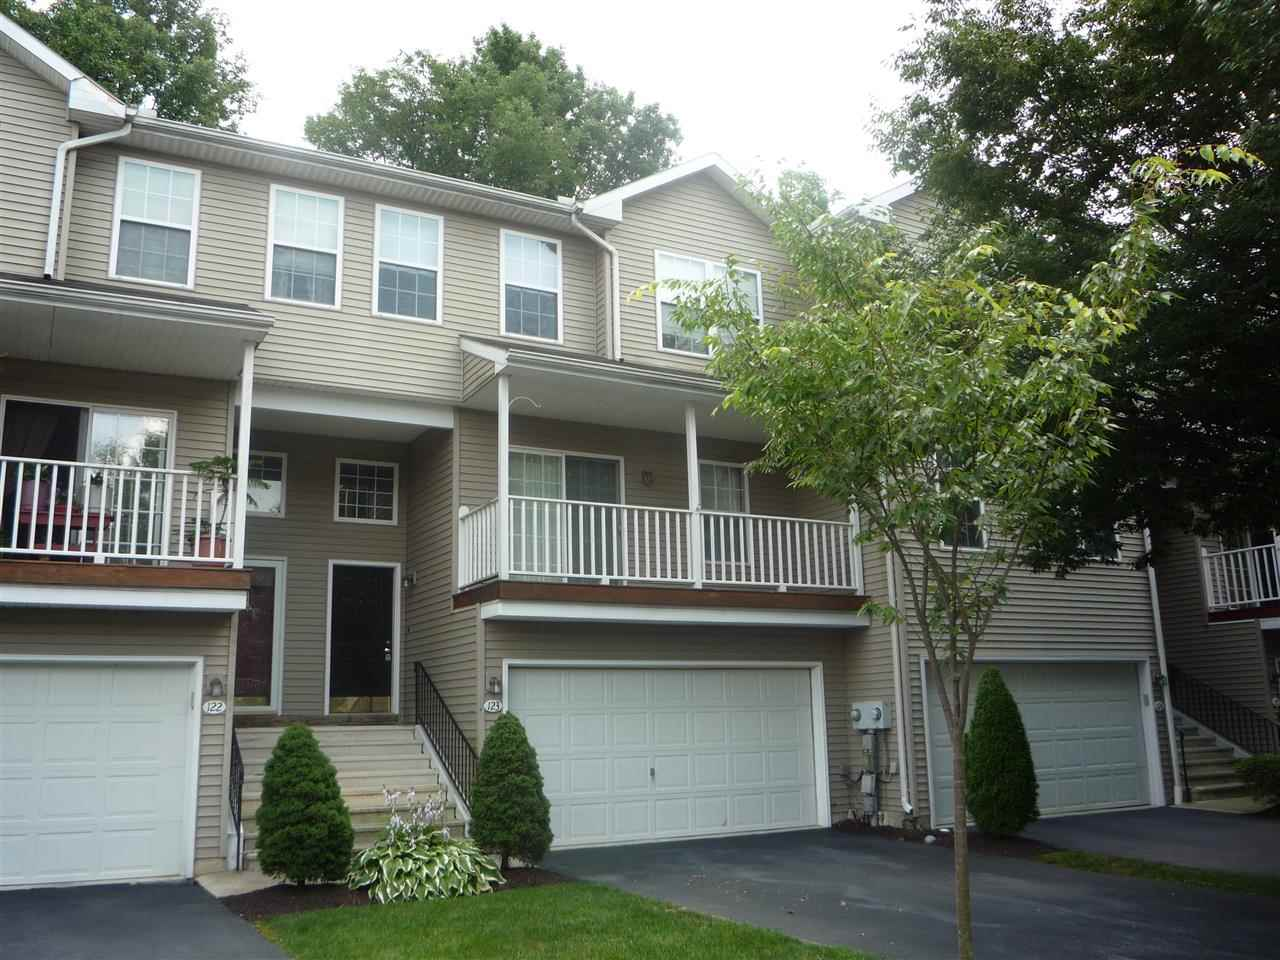 123 Woodside Ct, Annville, PA 17003